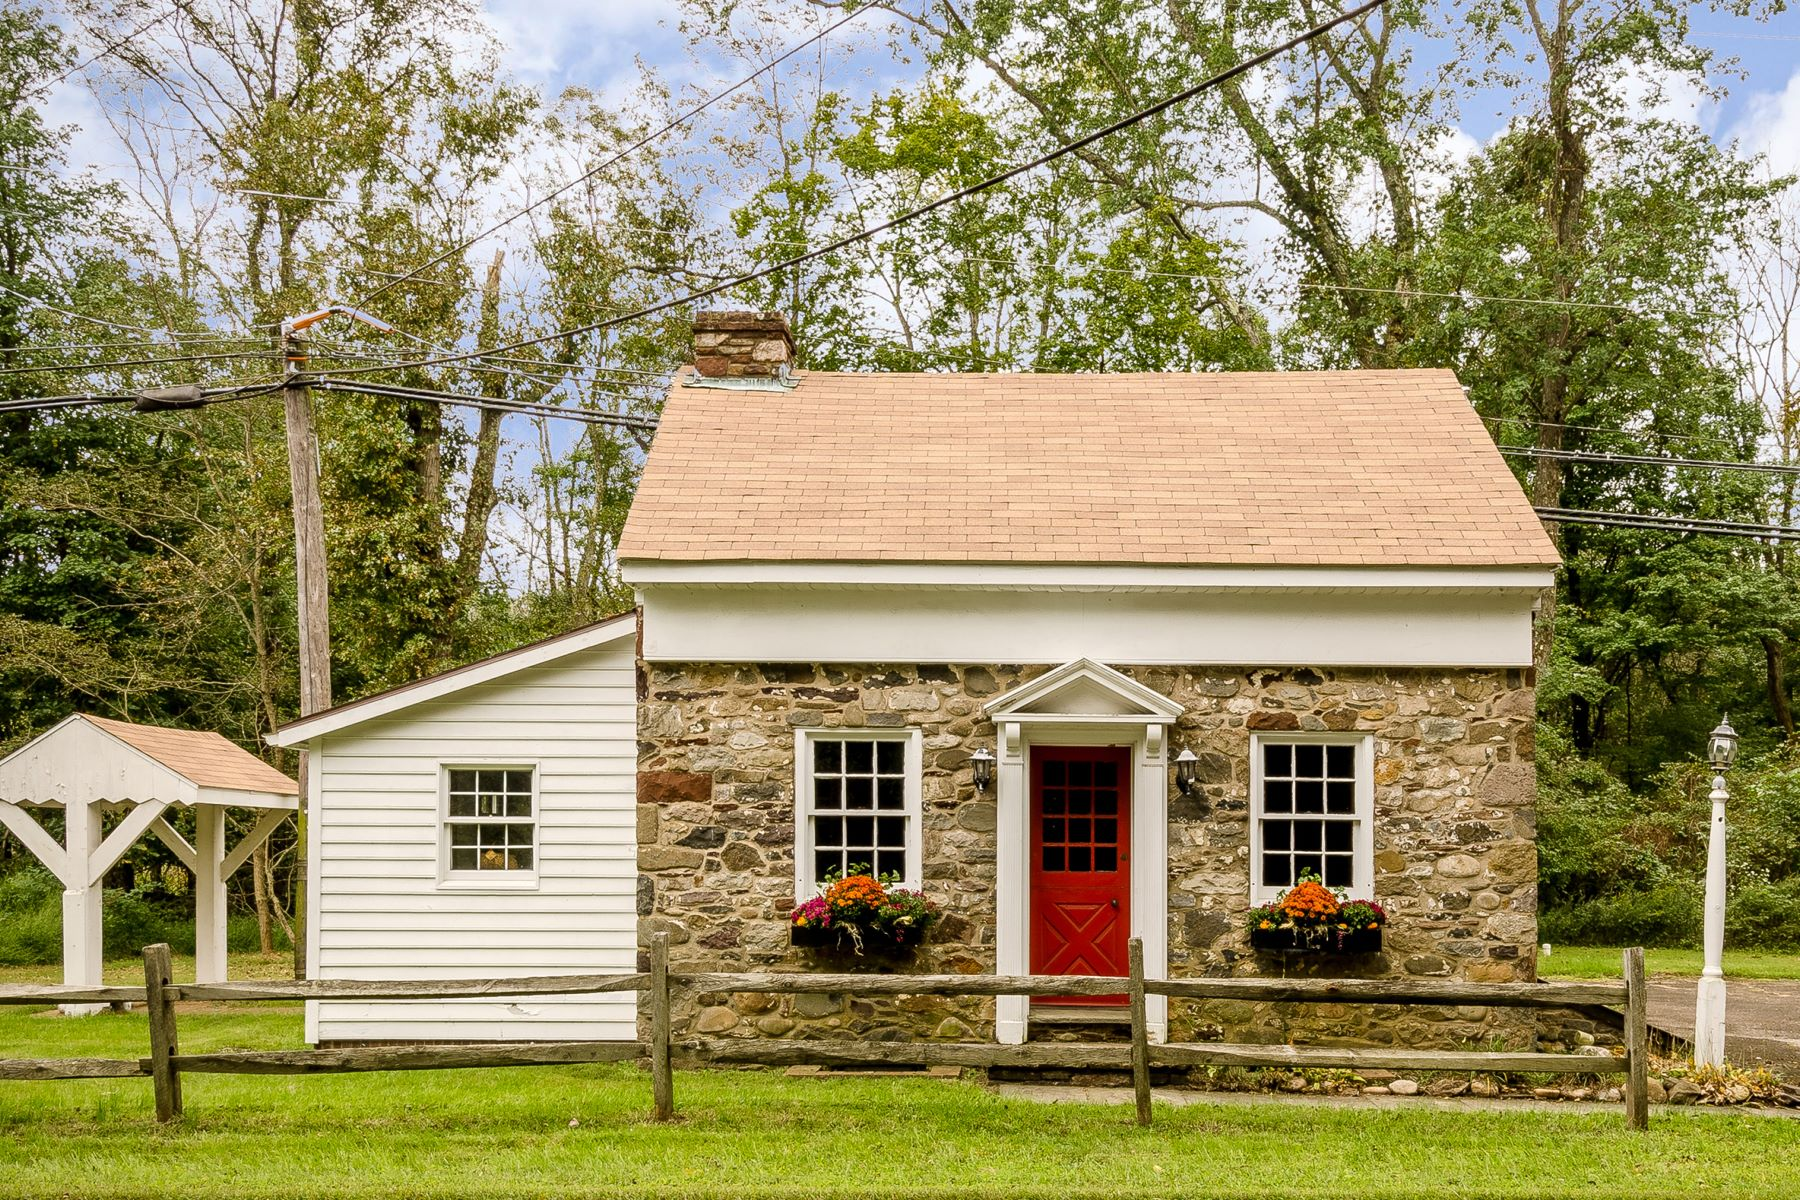 Single Family Homes for Sale at 1241 TAYLORSVILLE RD Washington Crossing, Pennsylvania 18977 United States